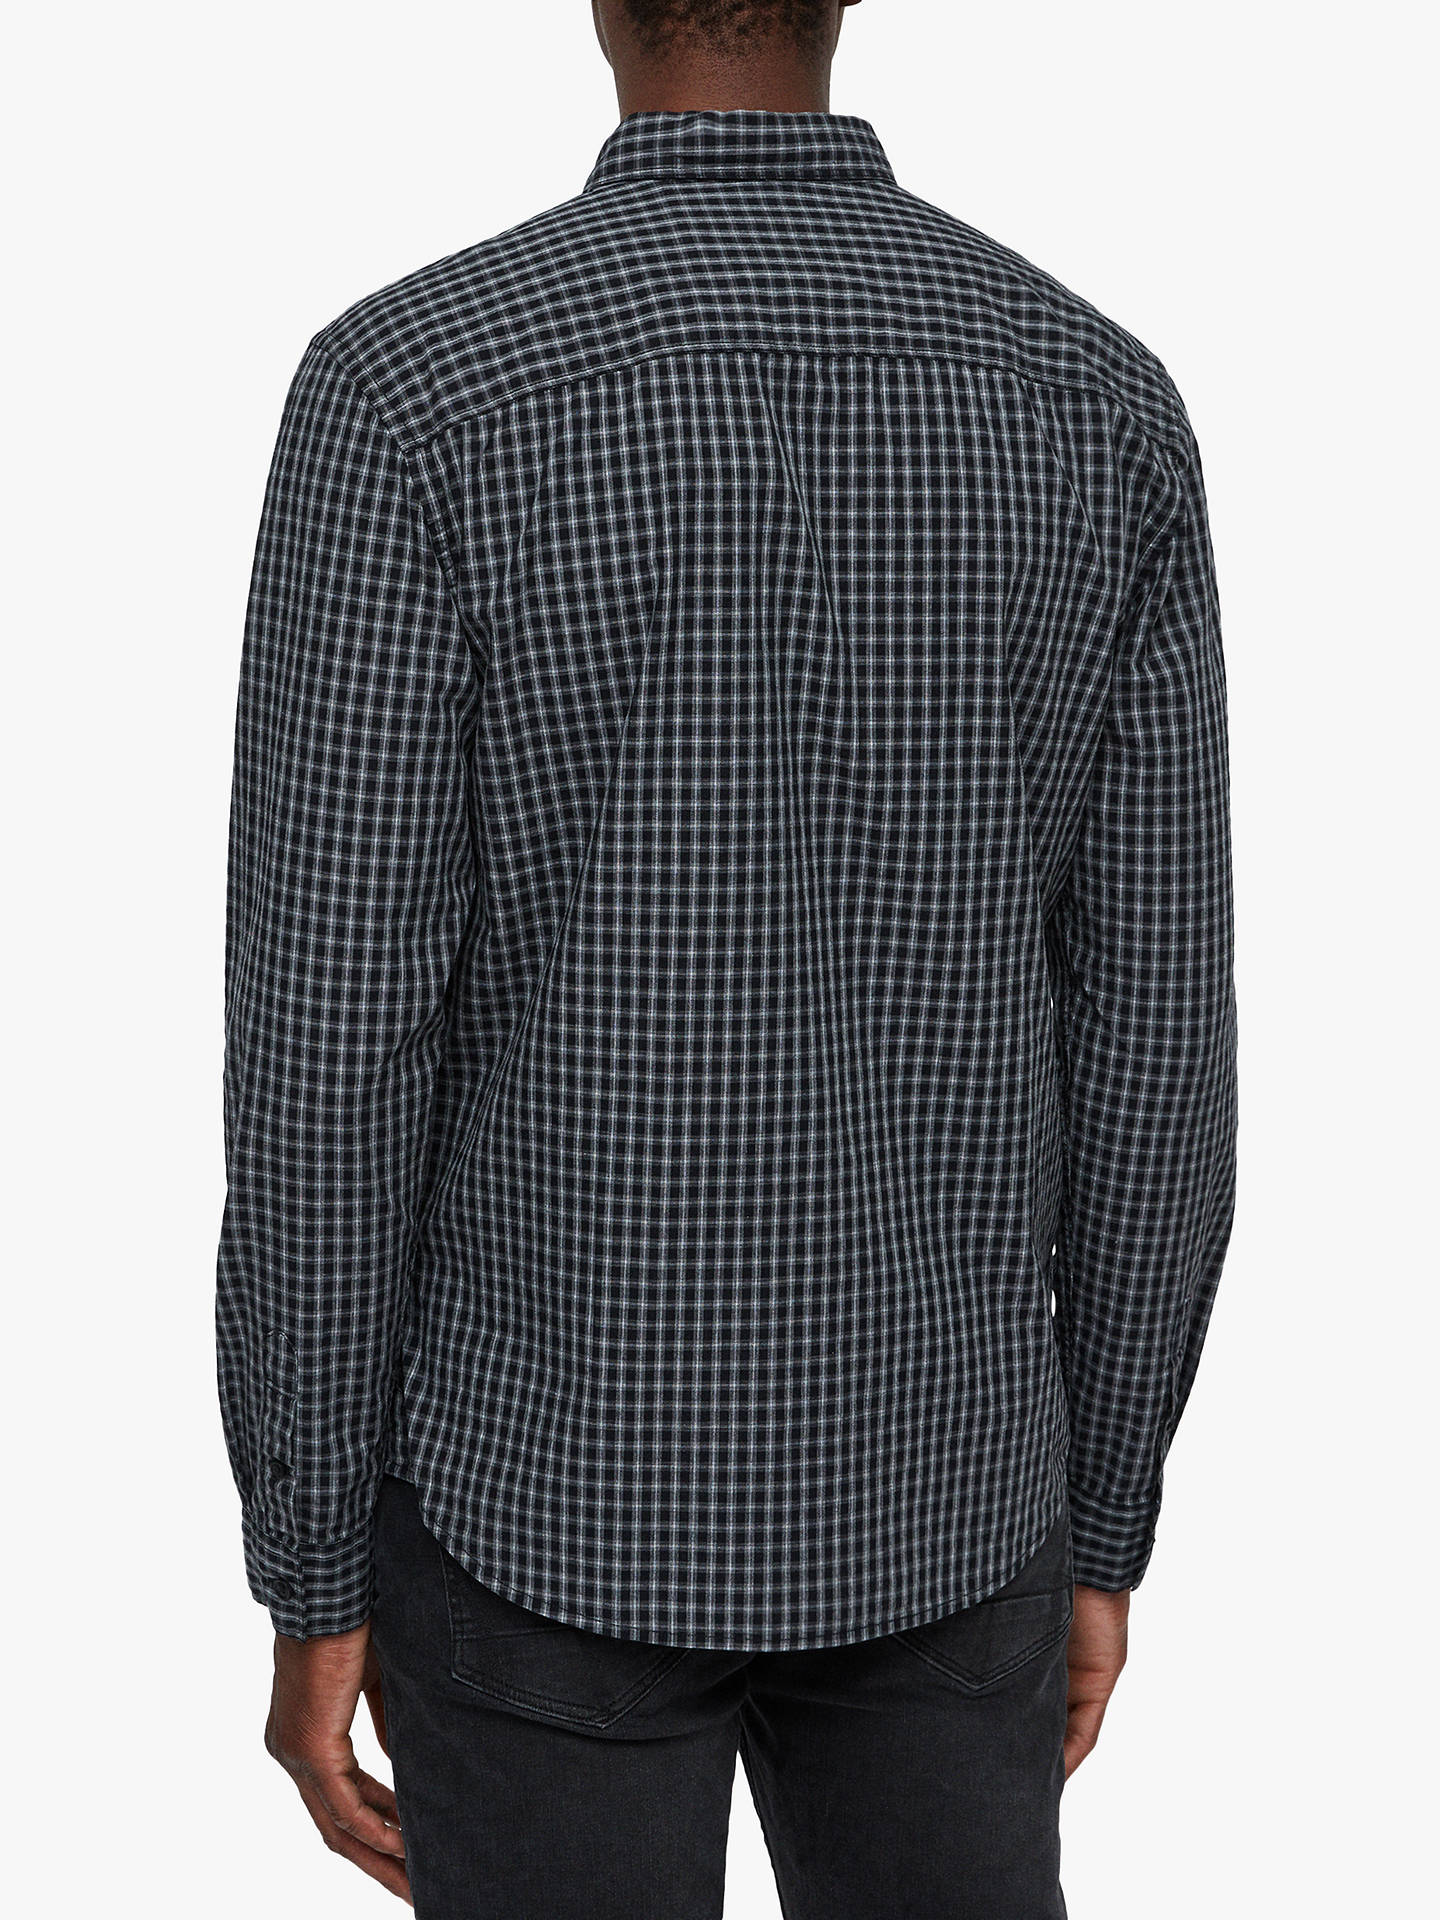 BuyAllSaints Murdo Long Sleeve Check Shirt, Black/Grey, S Online at johnlewis.com